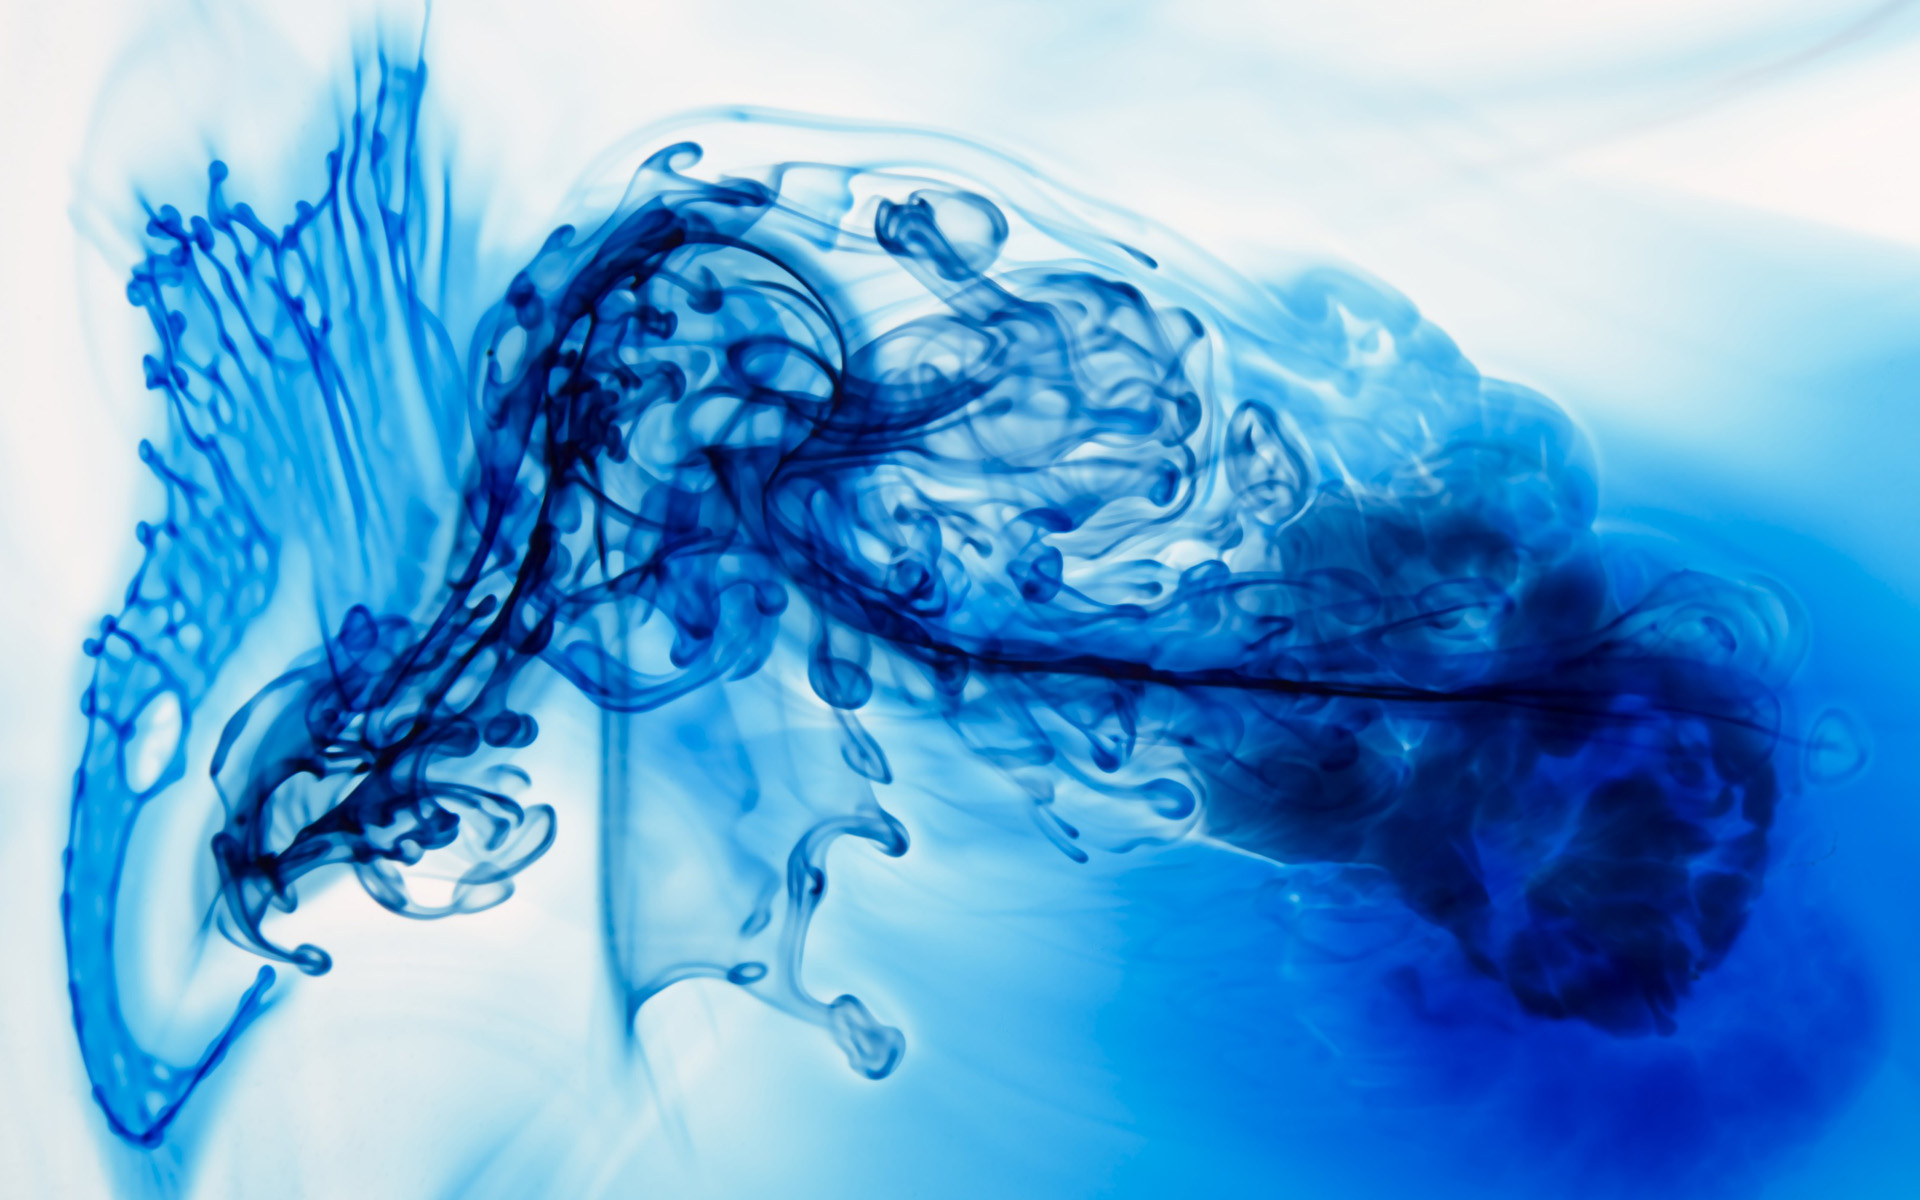 Abstract Wallpapers - Ink In Water